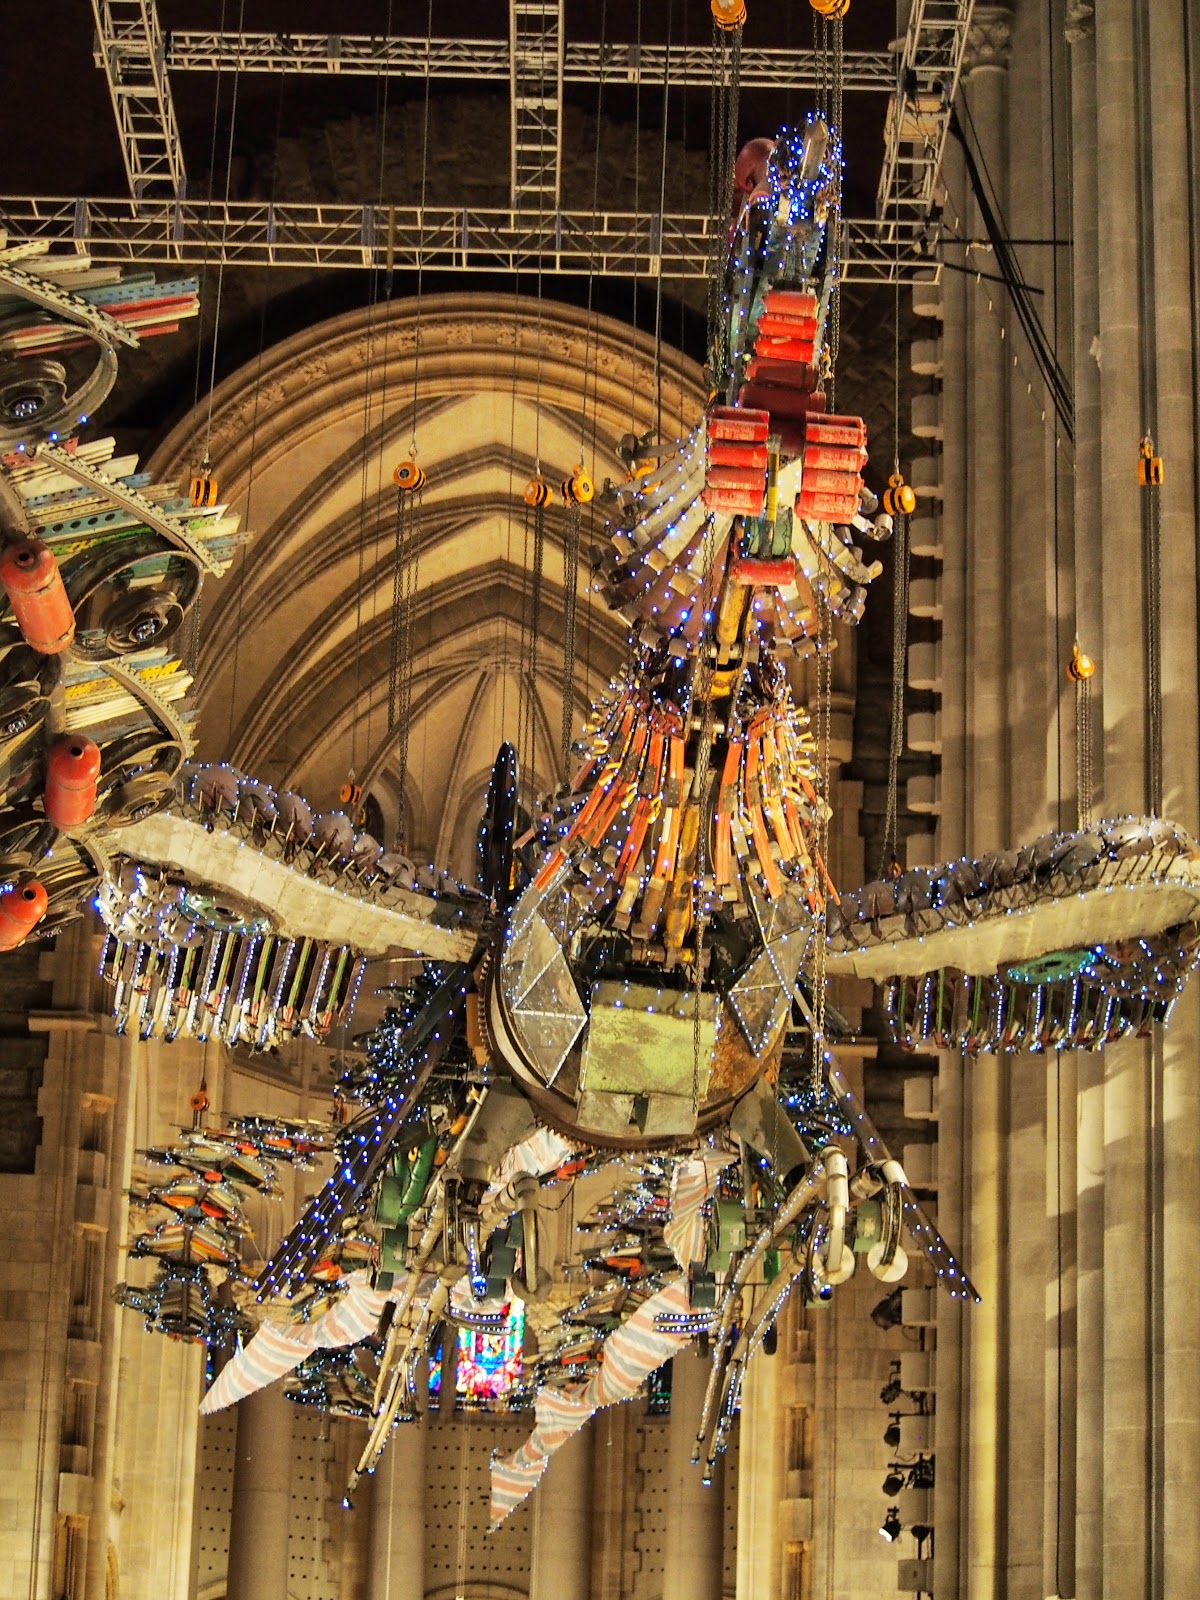 Huang #Huang #phoenix #xubing #stjohnthedivinecathedral #art #nyc ©2014 Nancy Lundebjerg